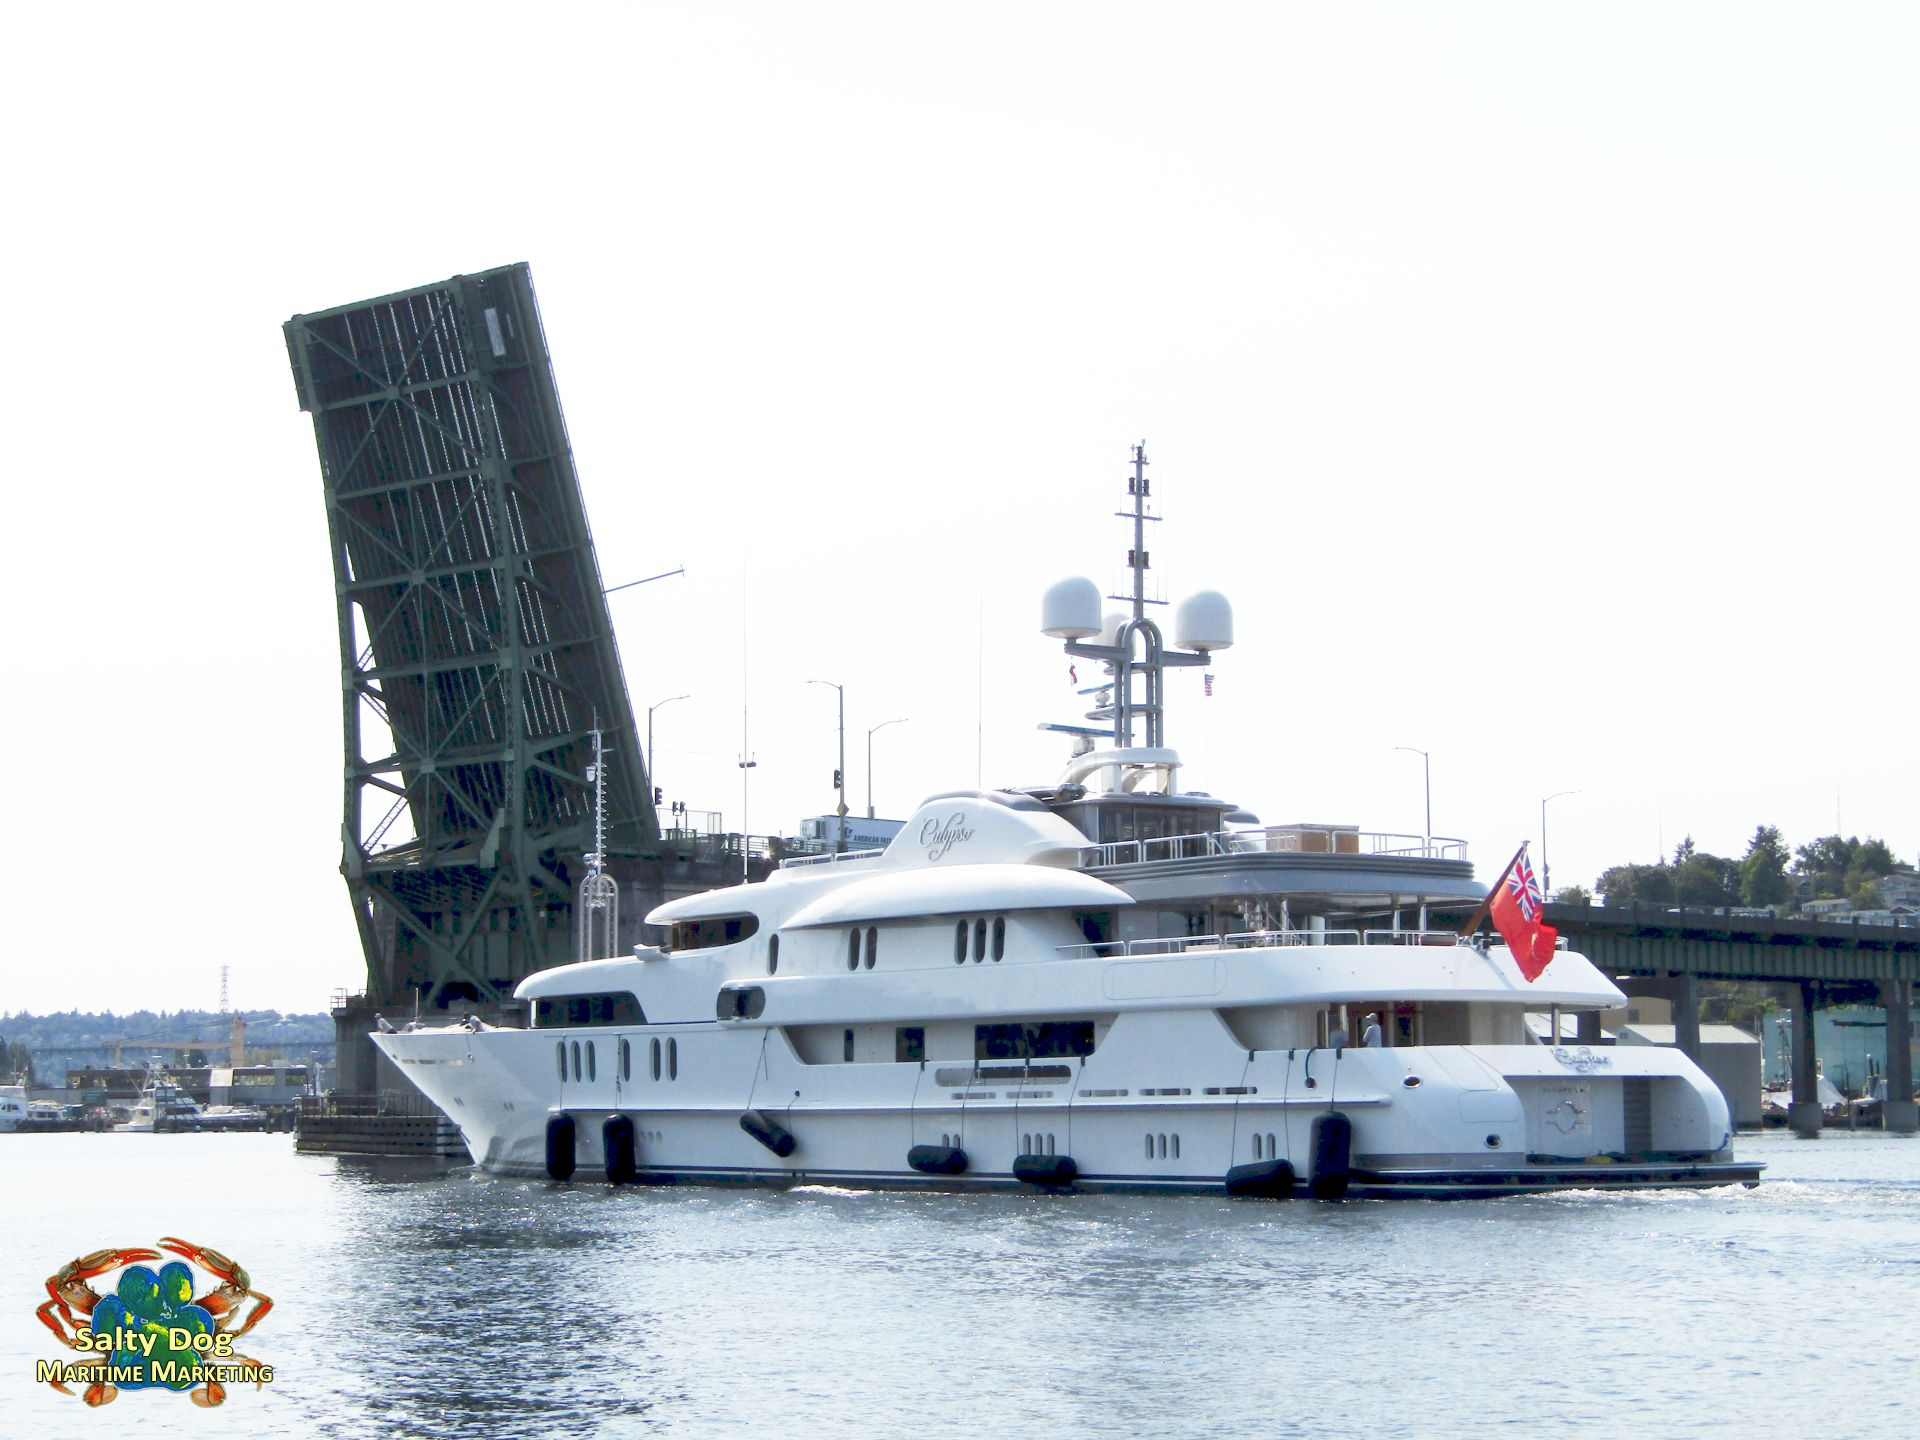 calypso, 61m seattle lake union, superyacht custom motor yacht pnw